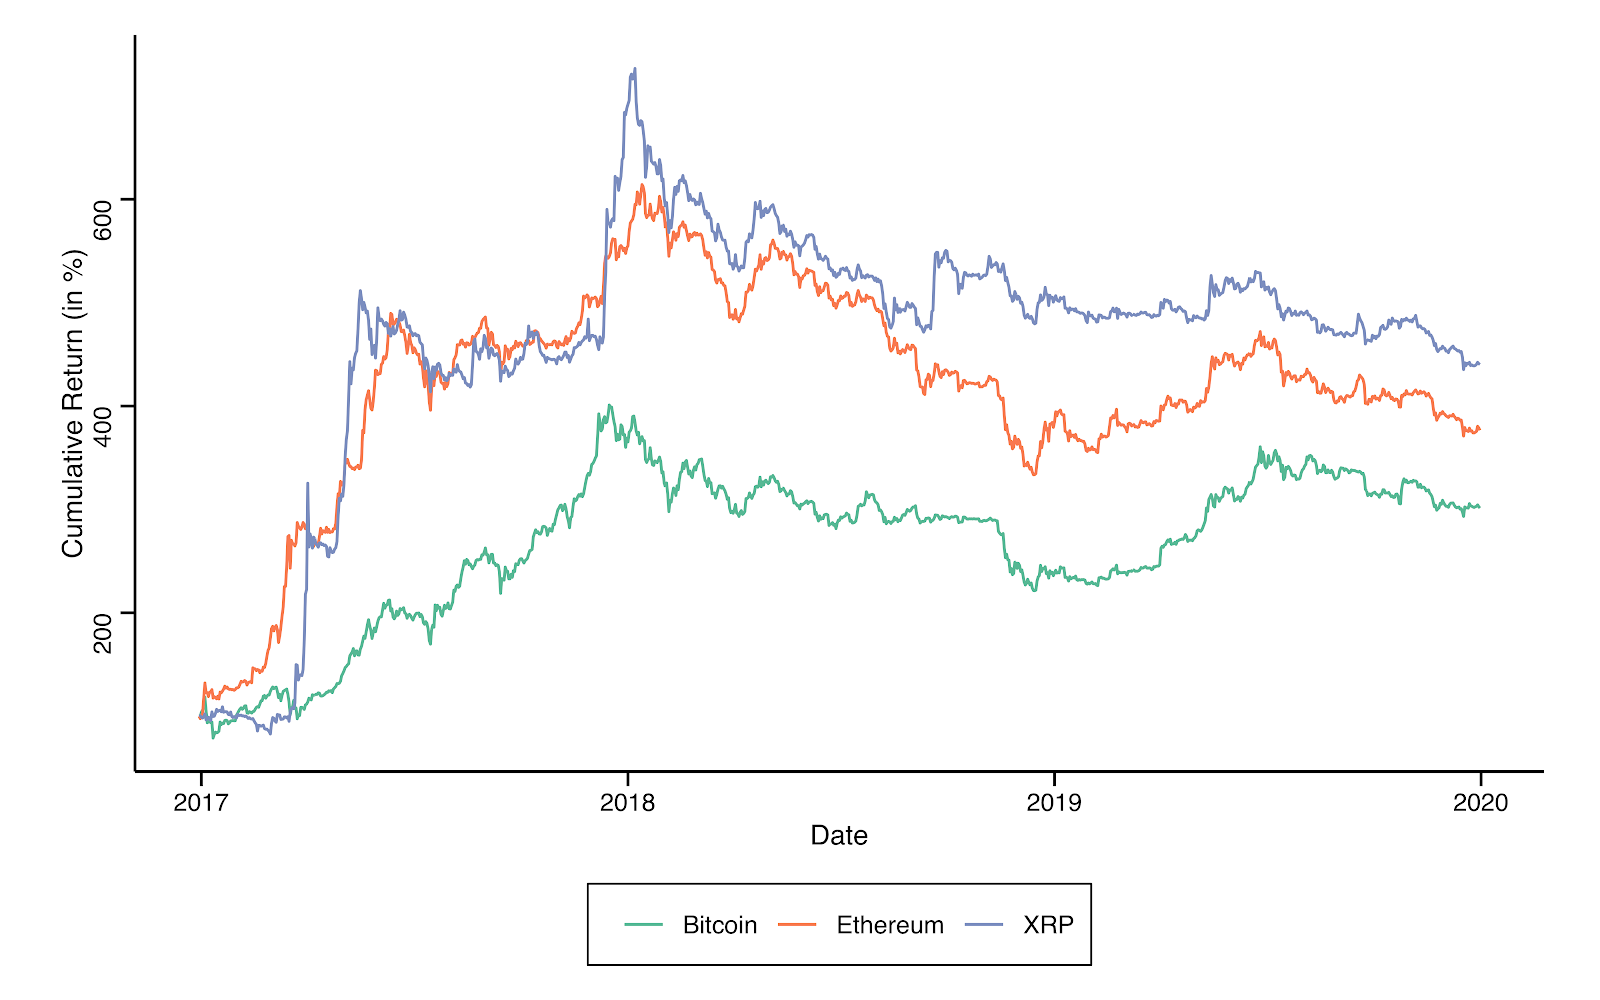 January 2017–December 2019 cumulative returns for the top three cryptocurrencies (Bitcoin, Ether and XRP)